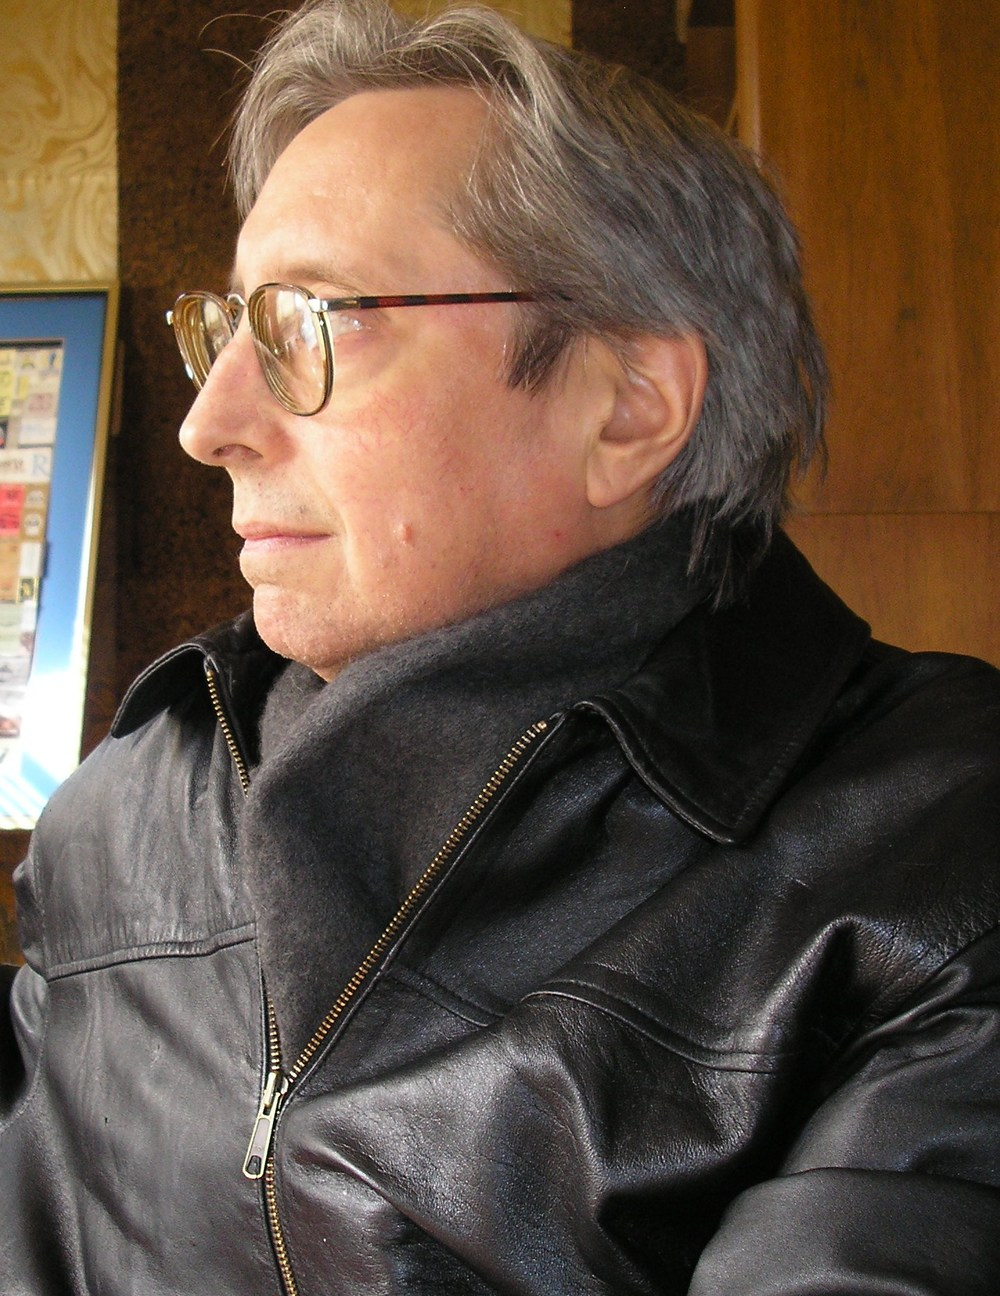 Writer, Director, Actor, Musician, Christopher Reilly: St. Louis based author and creative.